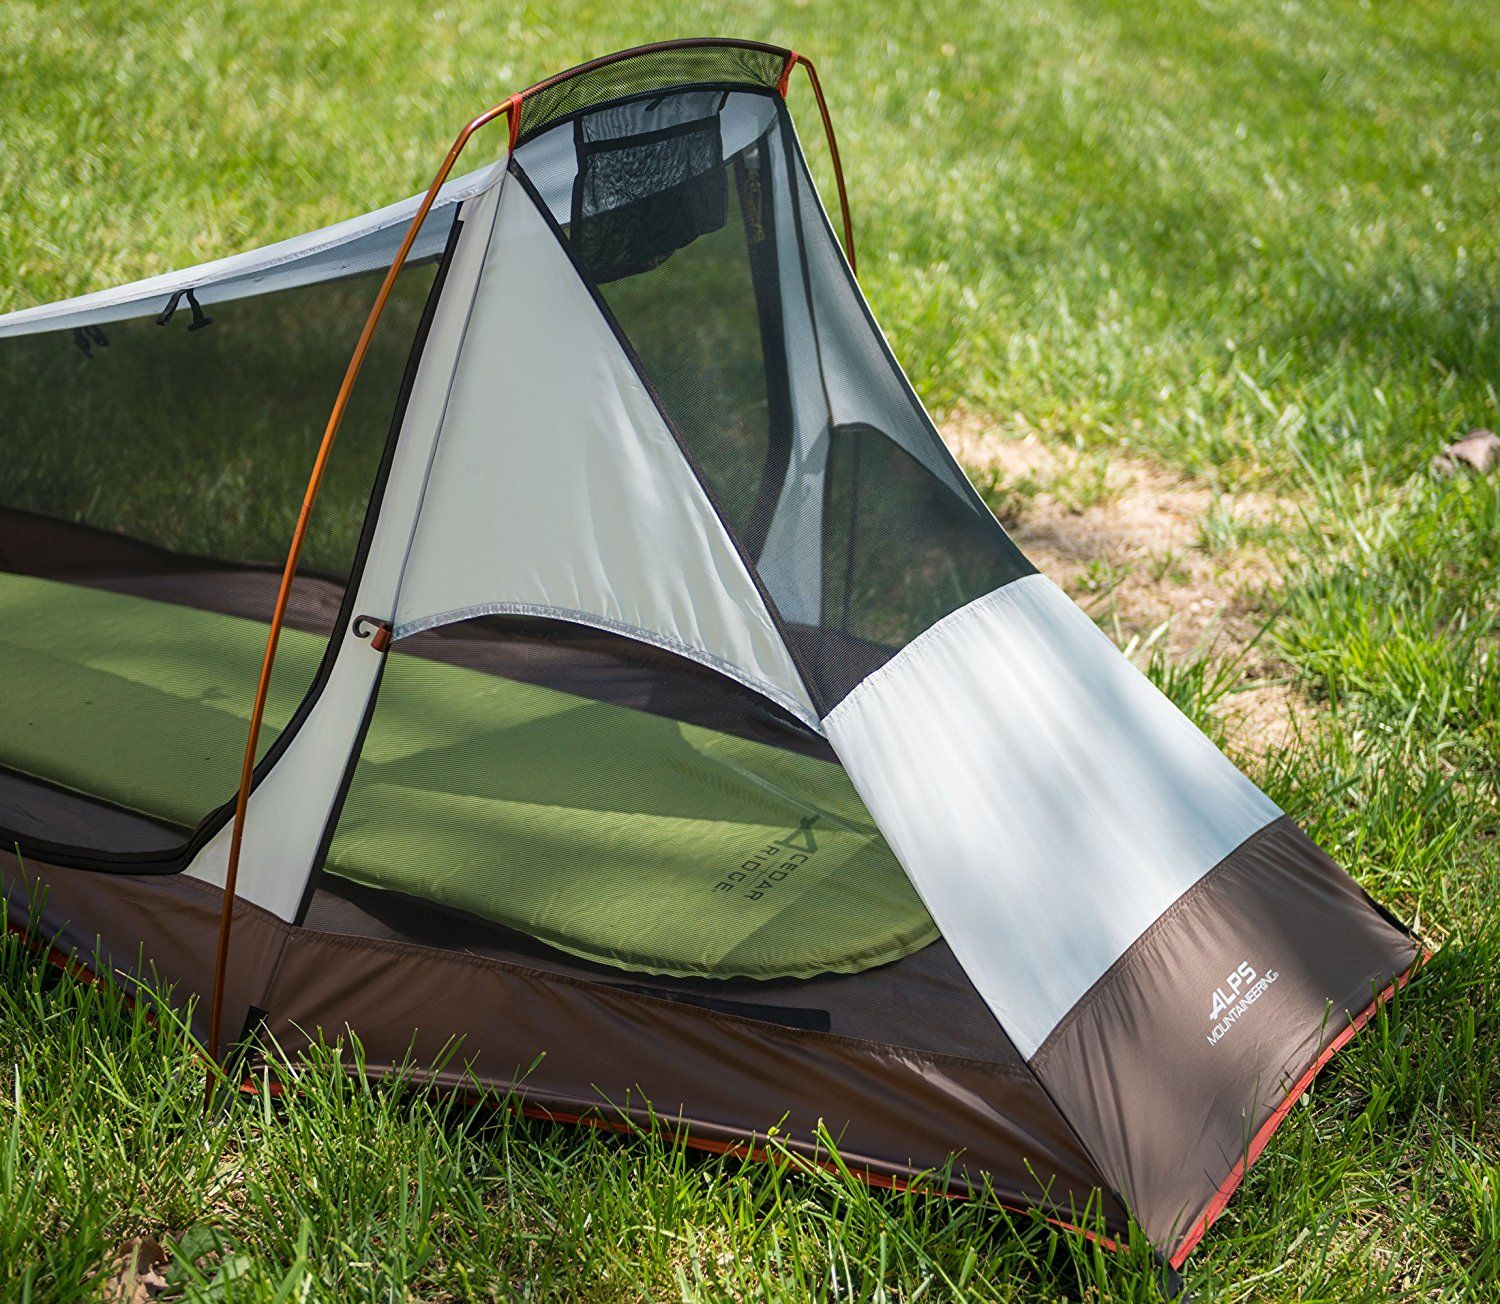 Lightweight and Durable One Person Tent with a 2 Pole Design. ALPS Mountaineering Mystique 1.0 Tent & Lightweight and Durable One Person Tent with a 2 Pole Design. ALPS ...